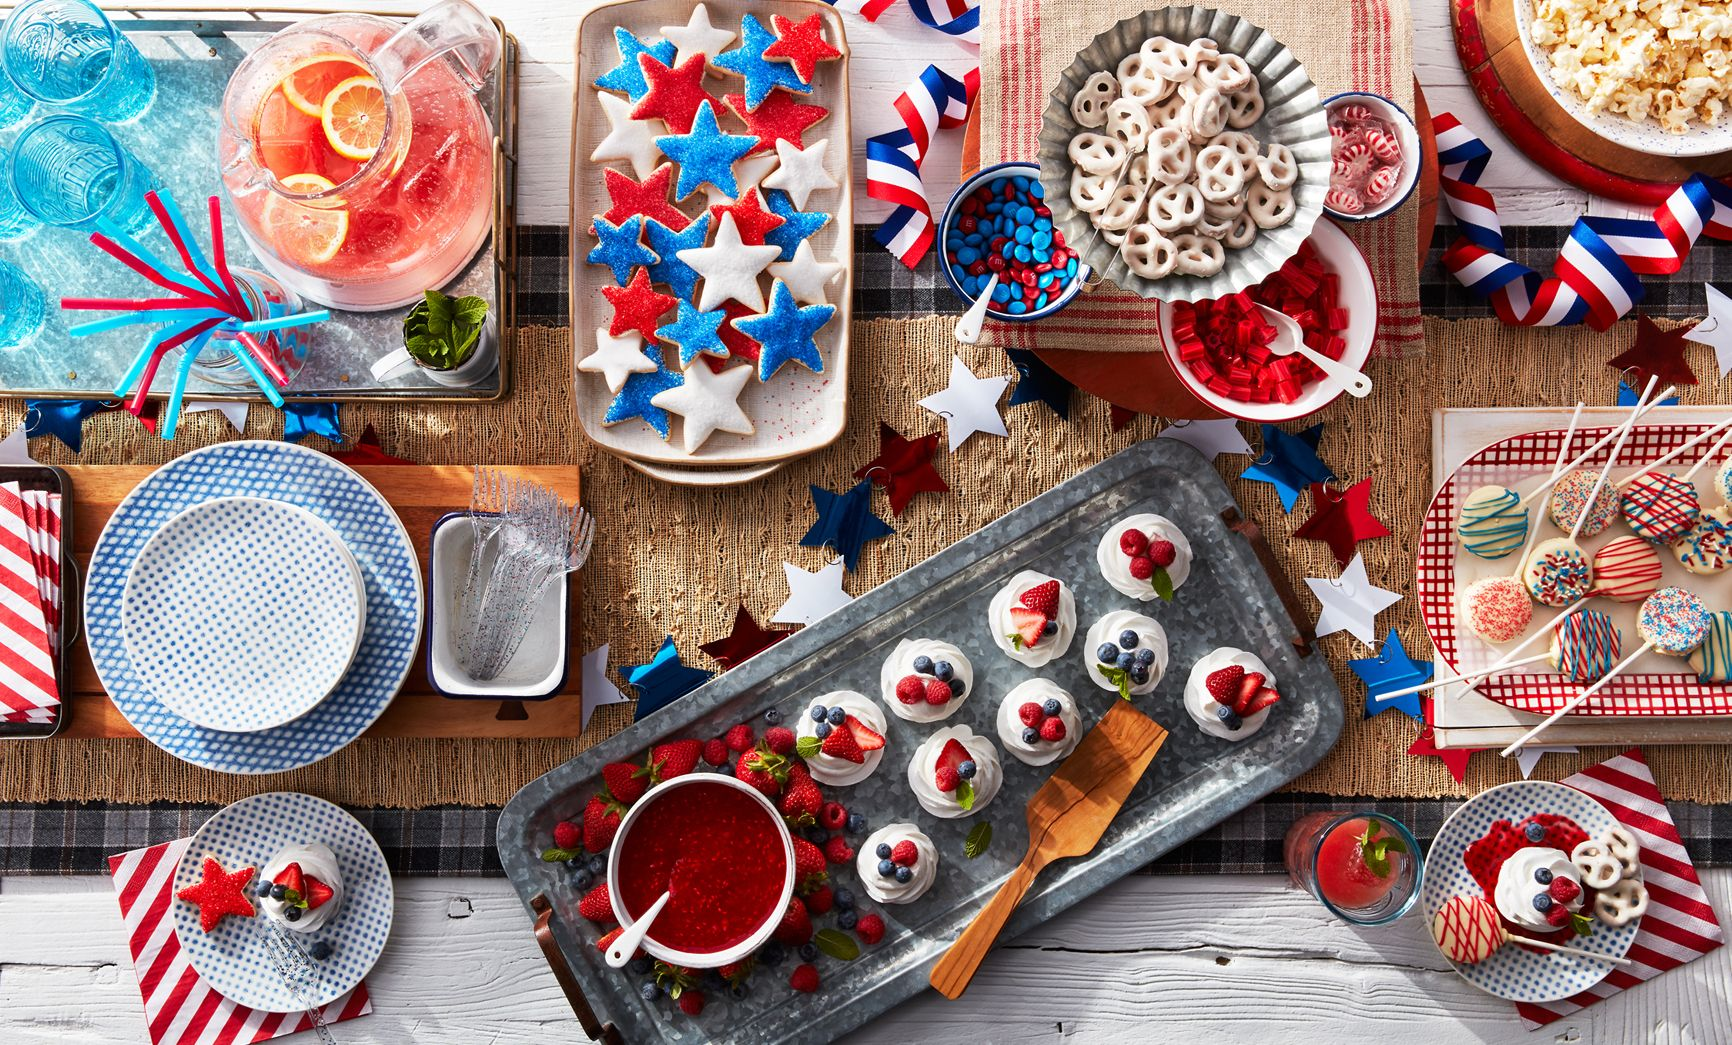 lisa bishop food stylist- Patriotic spread